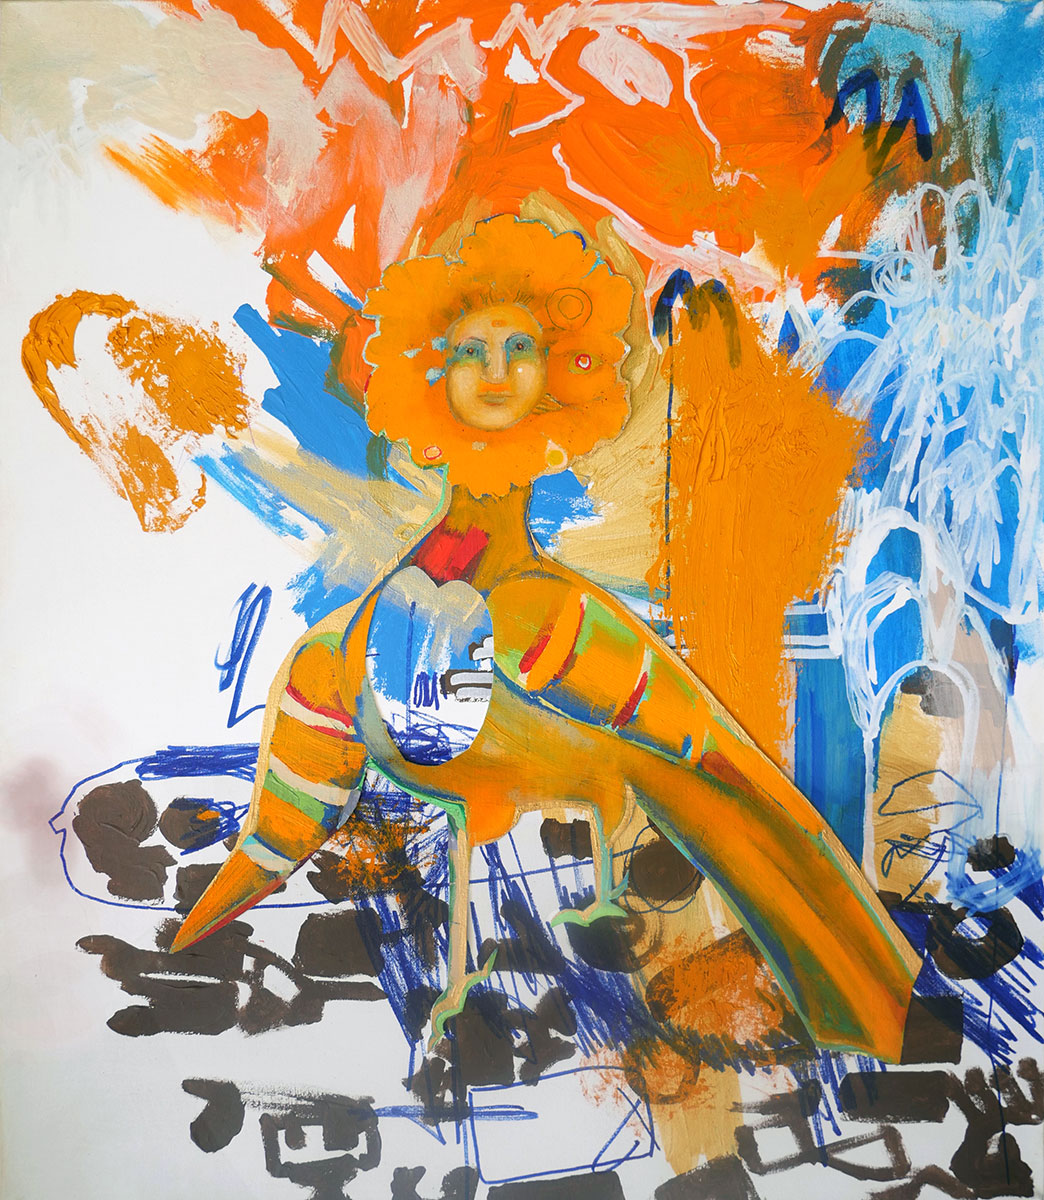 painting in blues and oranges of a bird-like creature with human face